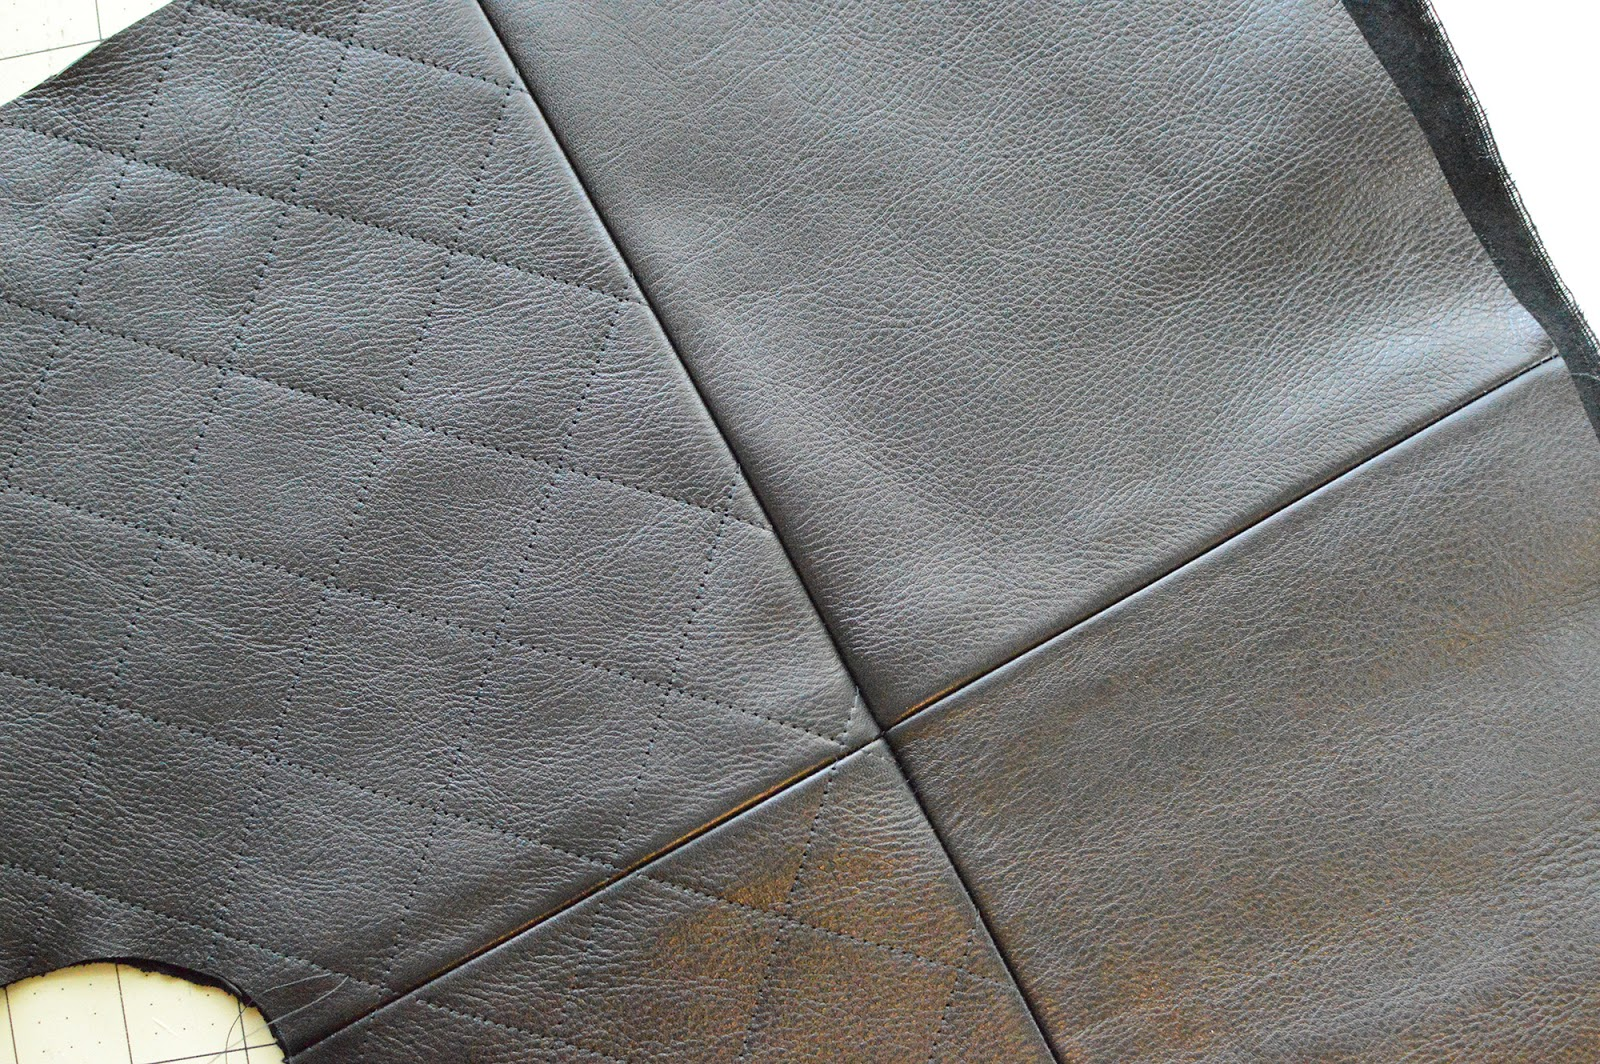 Allie Jackson: Quilting Leather and Construction Details/Changes ... : leather quilt - Adamdwight.com